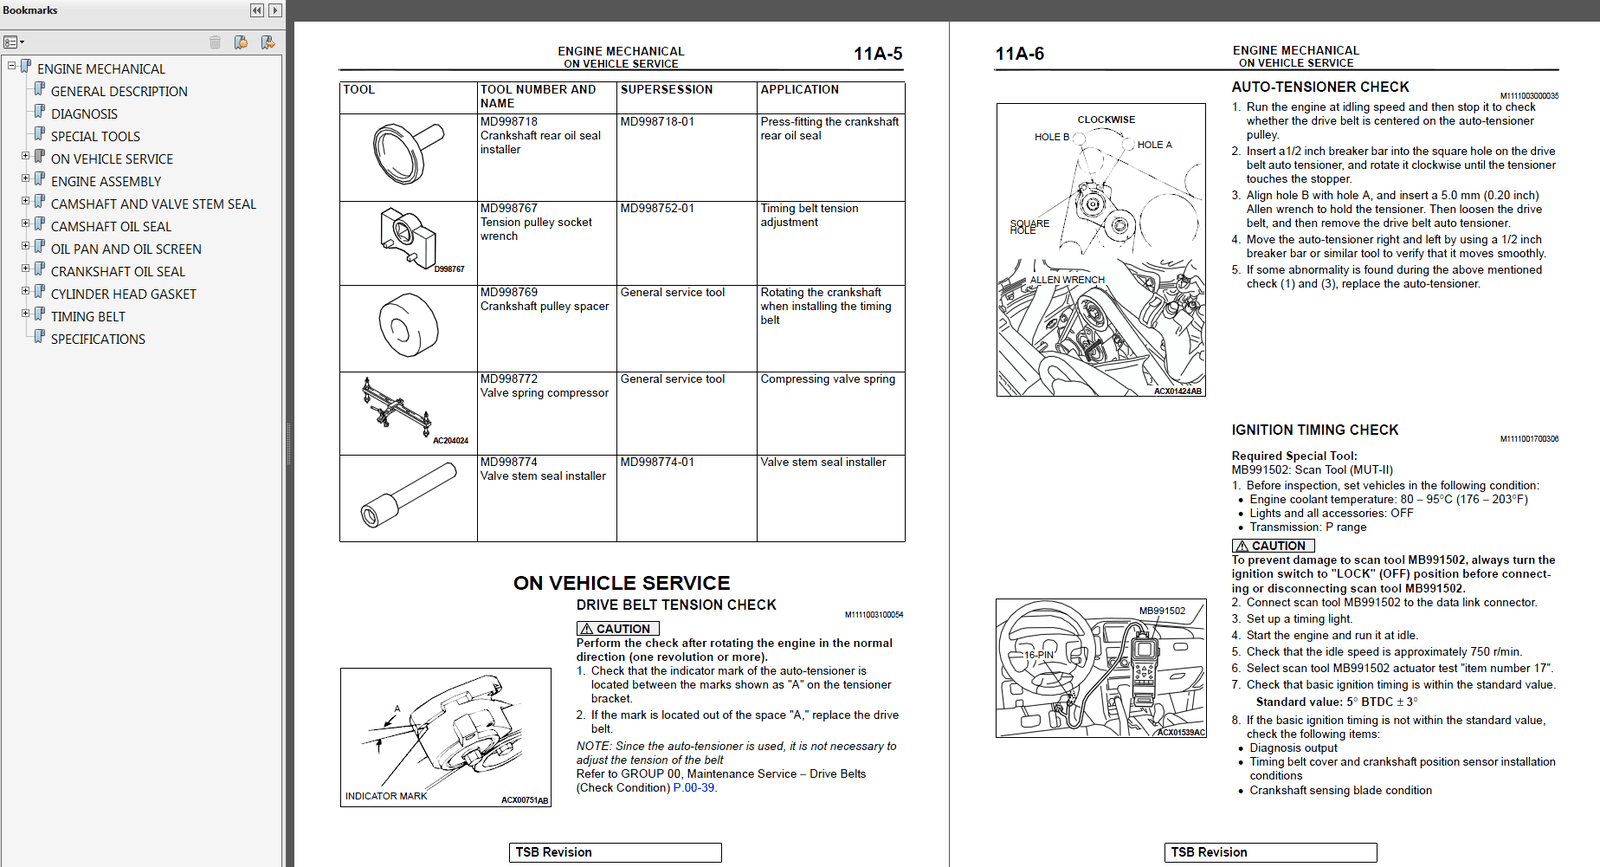 2003 Mitsubishi Montero Factory Repair Service Manual MSSP